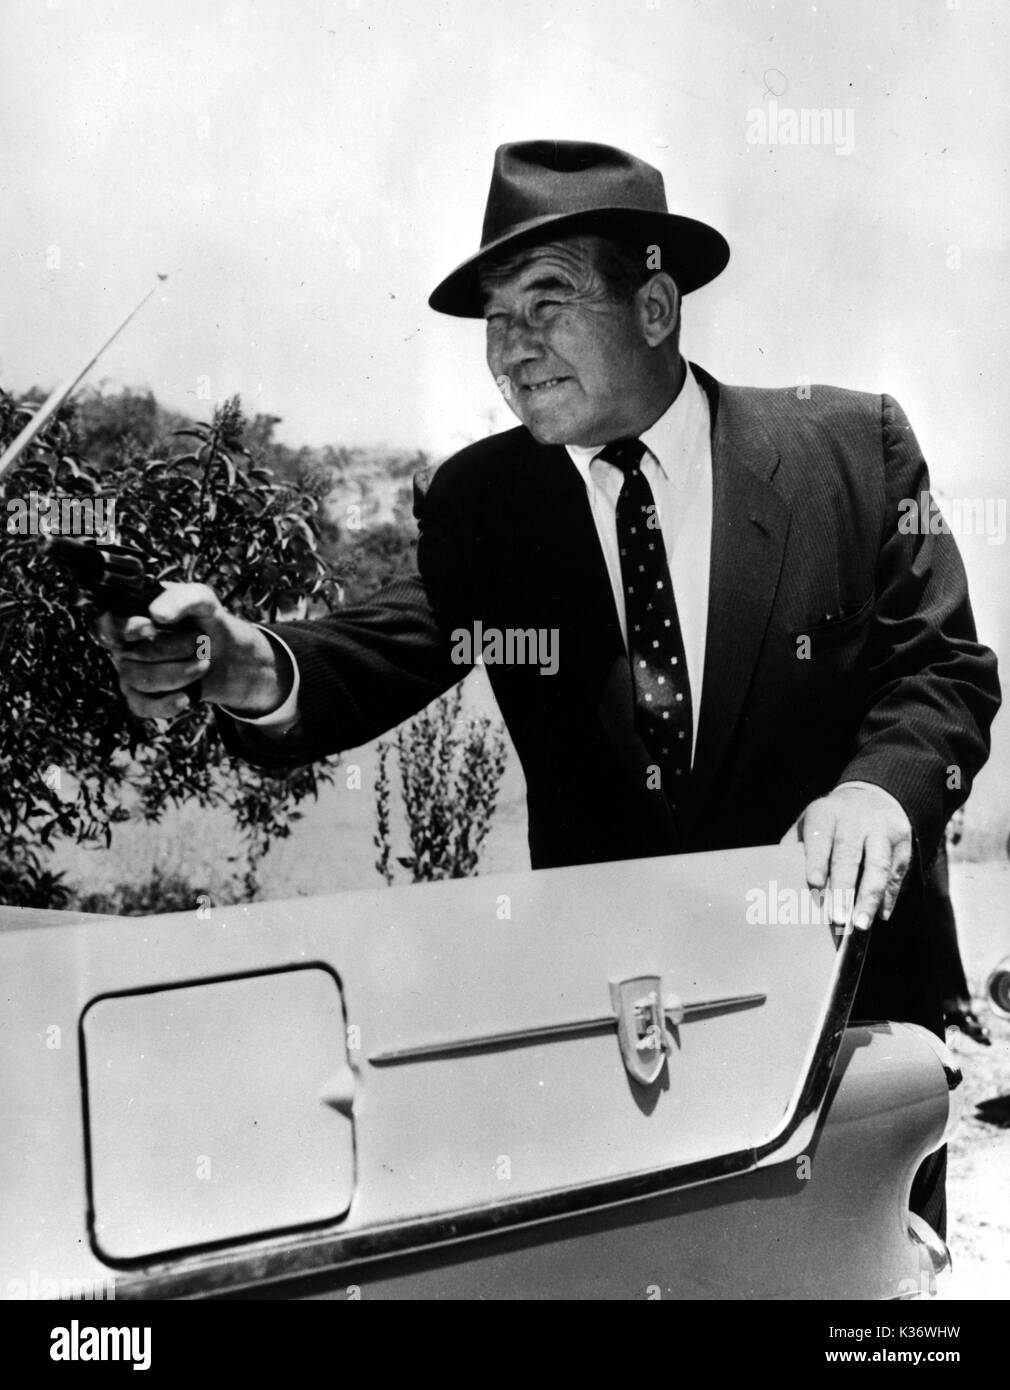 broderick crawford movies and tv shows